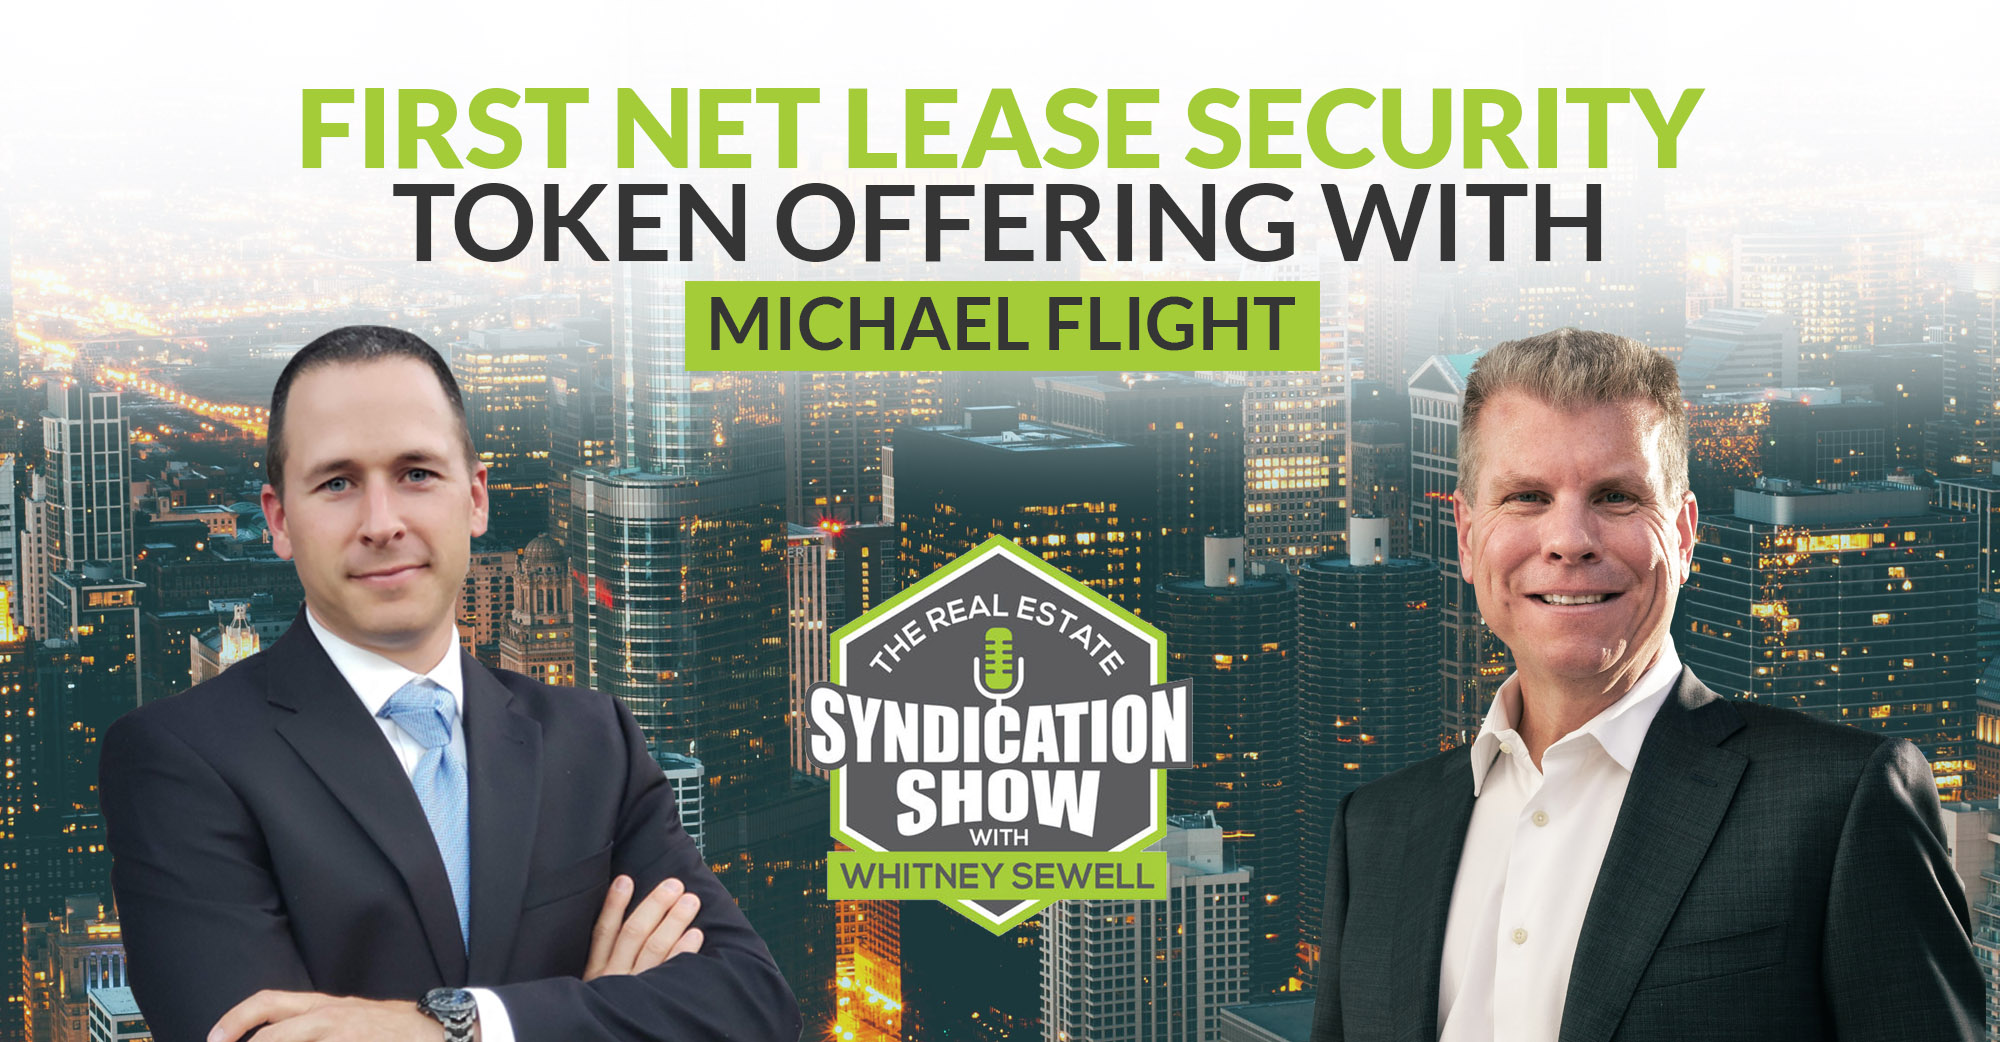 First Net Lease Security Token Offering with Michael Flight